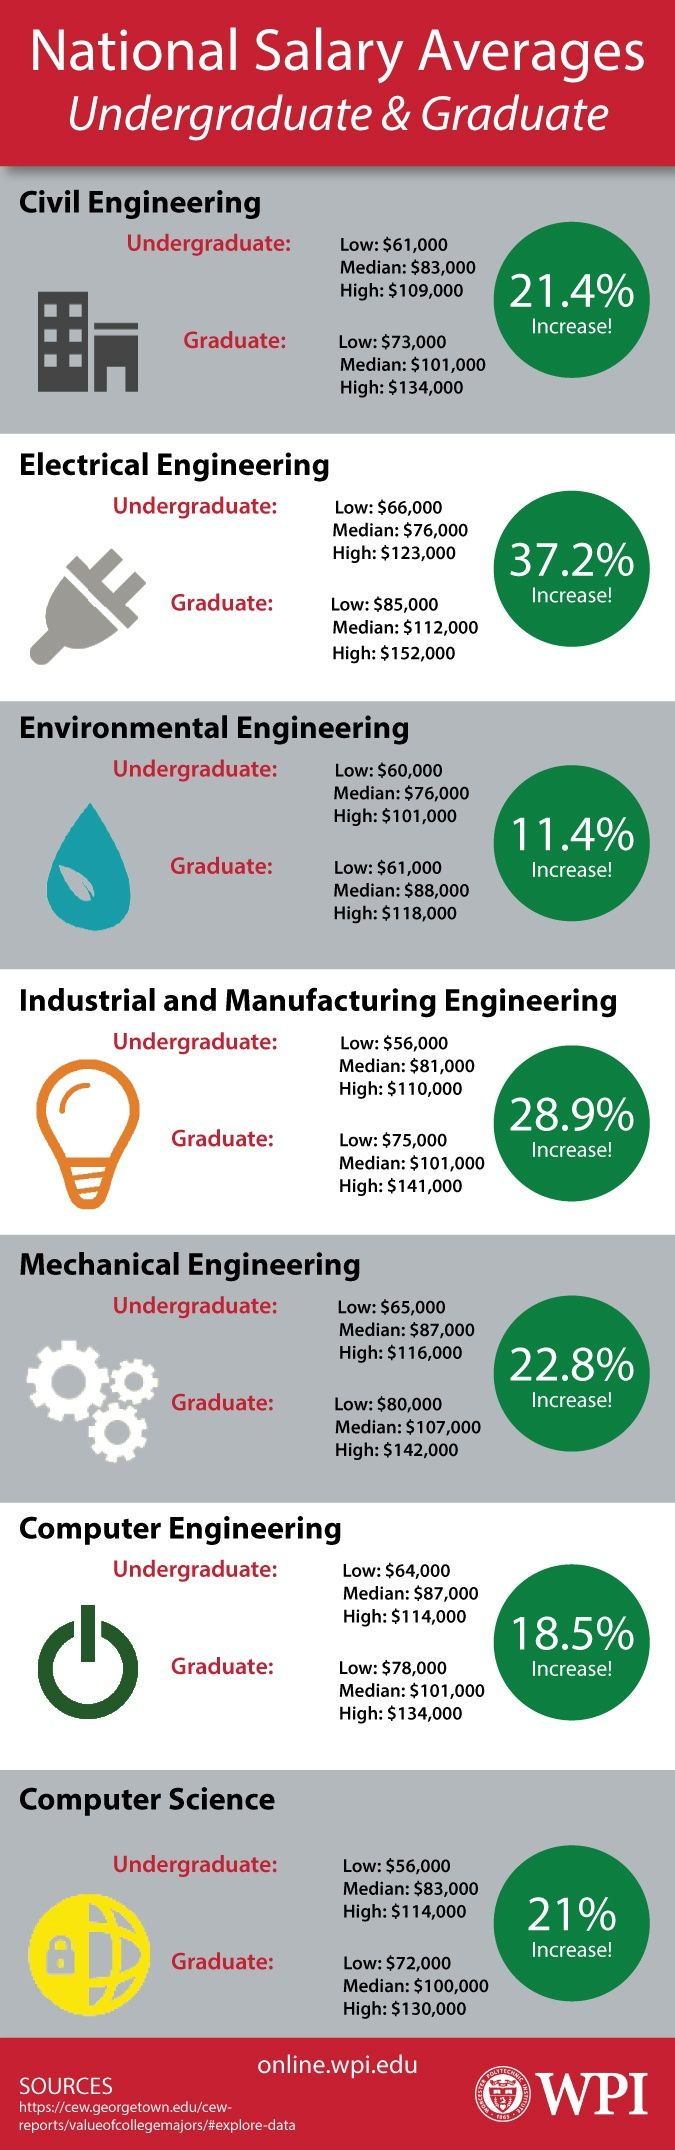 Have you ever wondered what a graduate degree could do for your salary? View our info graphic to discover the difference a graduate degree can make in the following fields: Civil Engineering, Electric